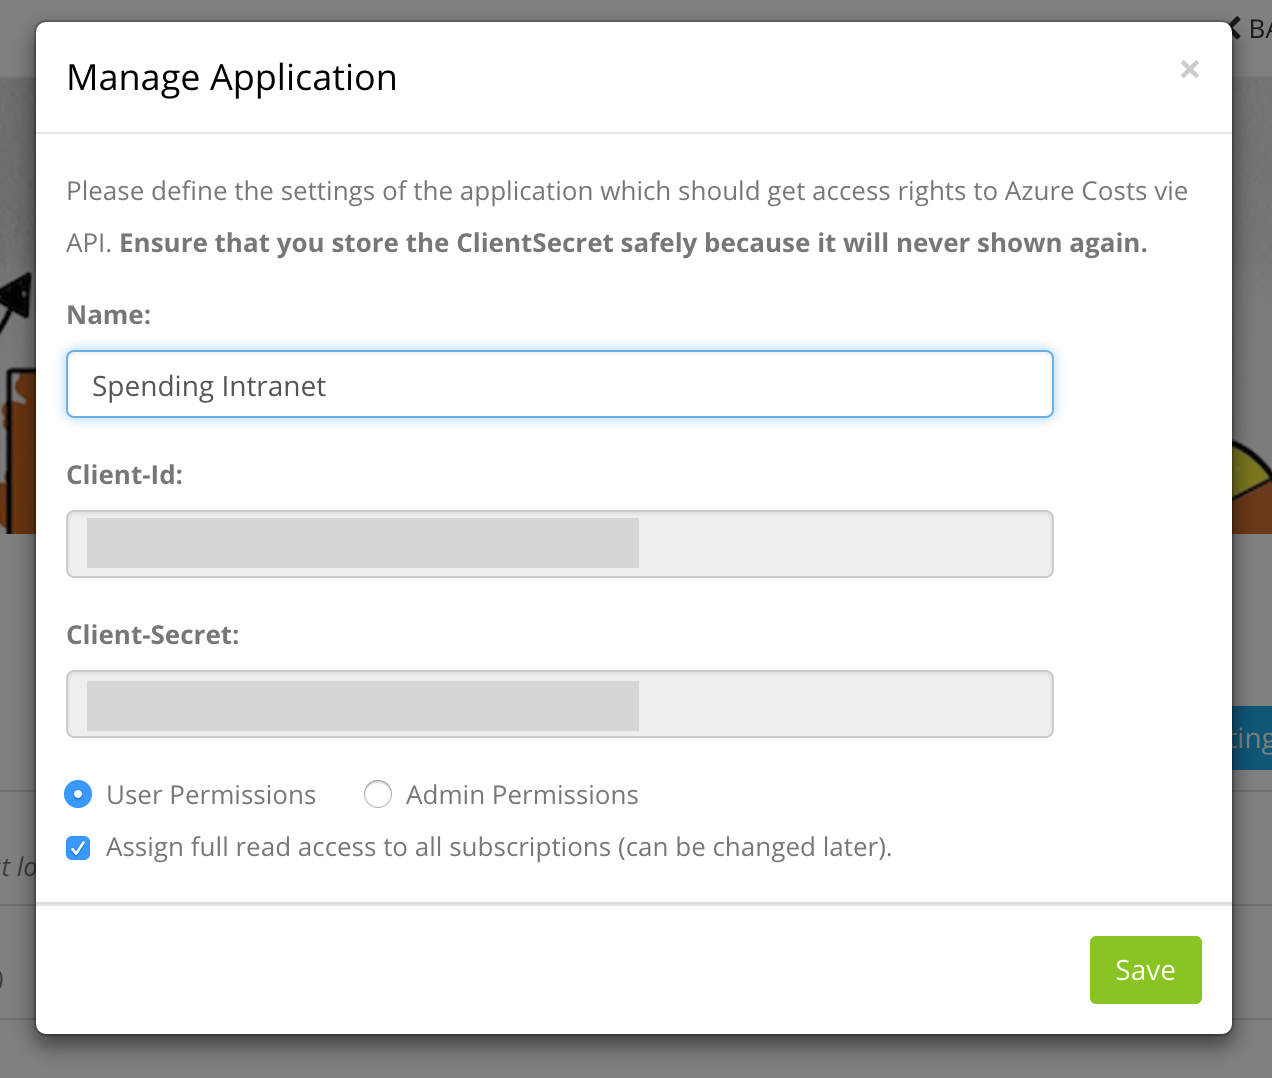 Integrate your applications via oAuth2 – Customer Feedback for Azure